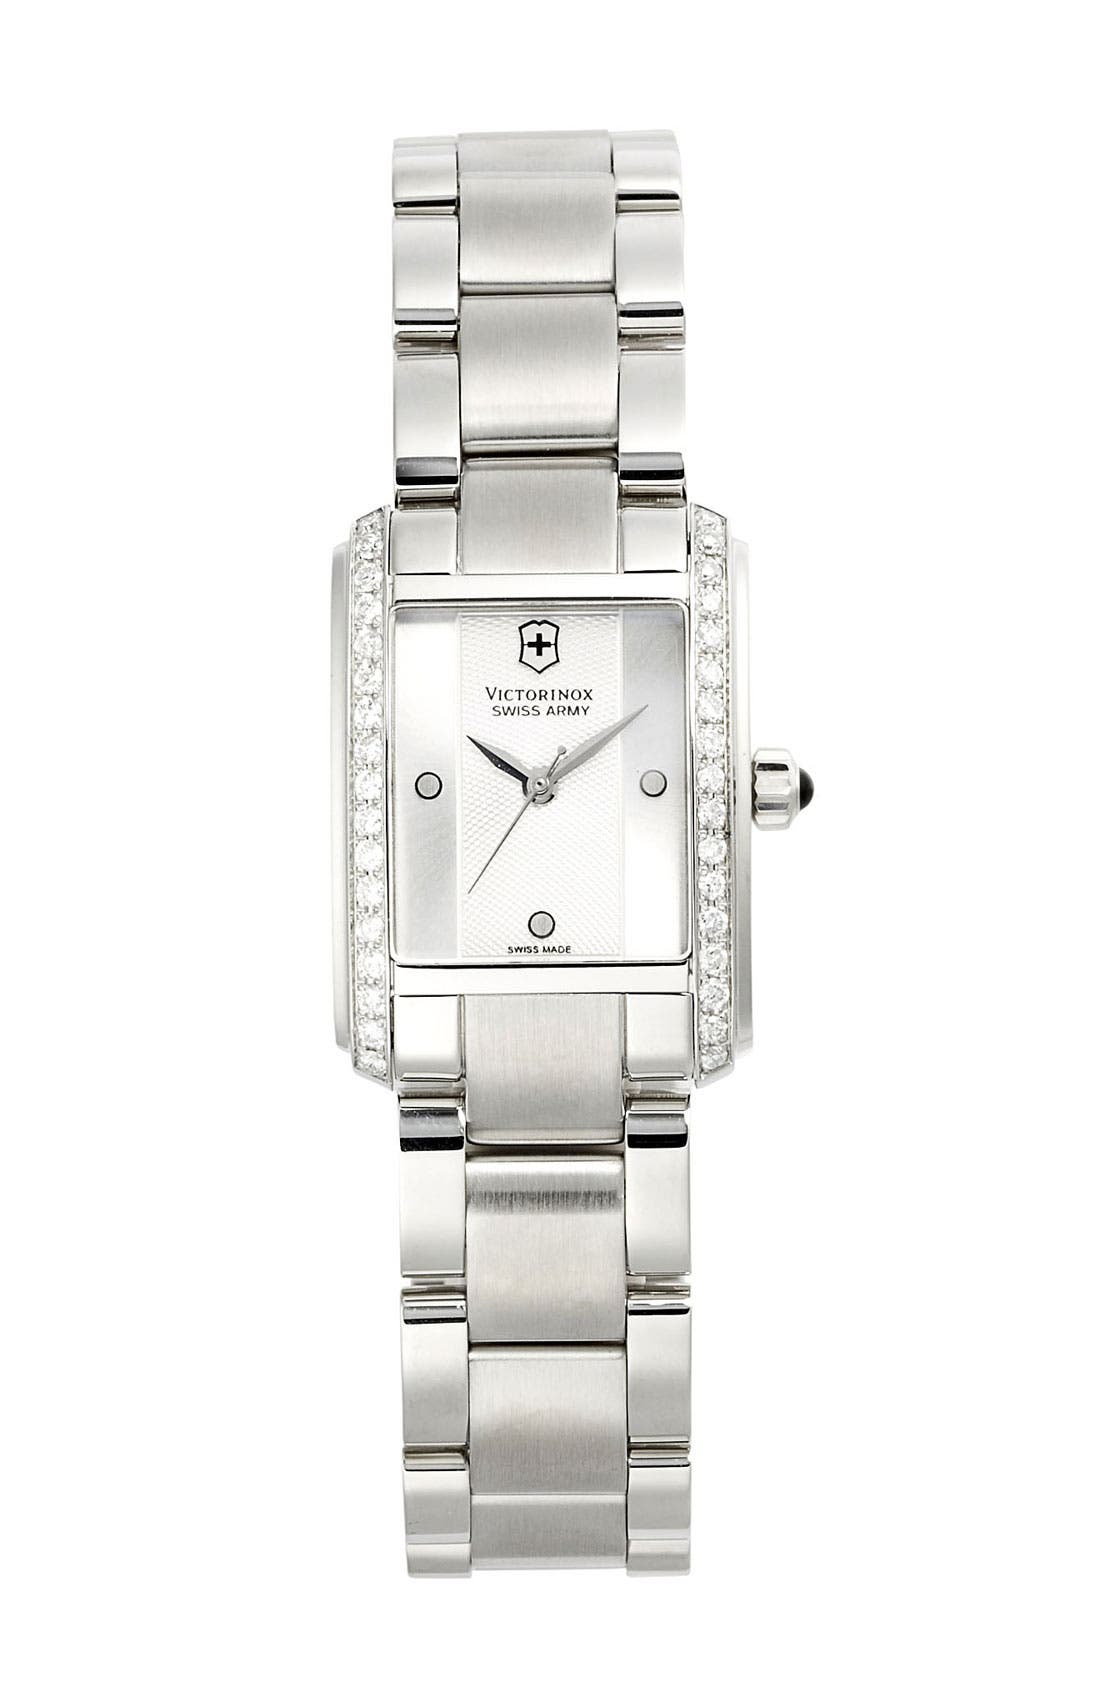 Main Image - Victorinox Swiss Army® 'Vivante' Rectangular Diamond Case Bracelet Watch, 21mm x 30mm